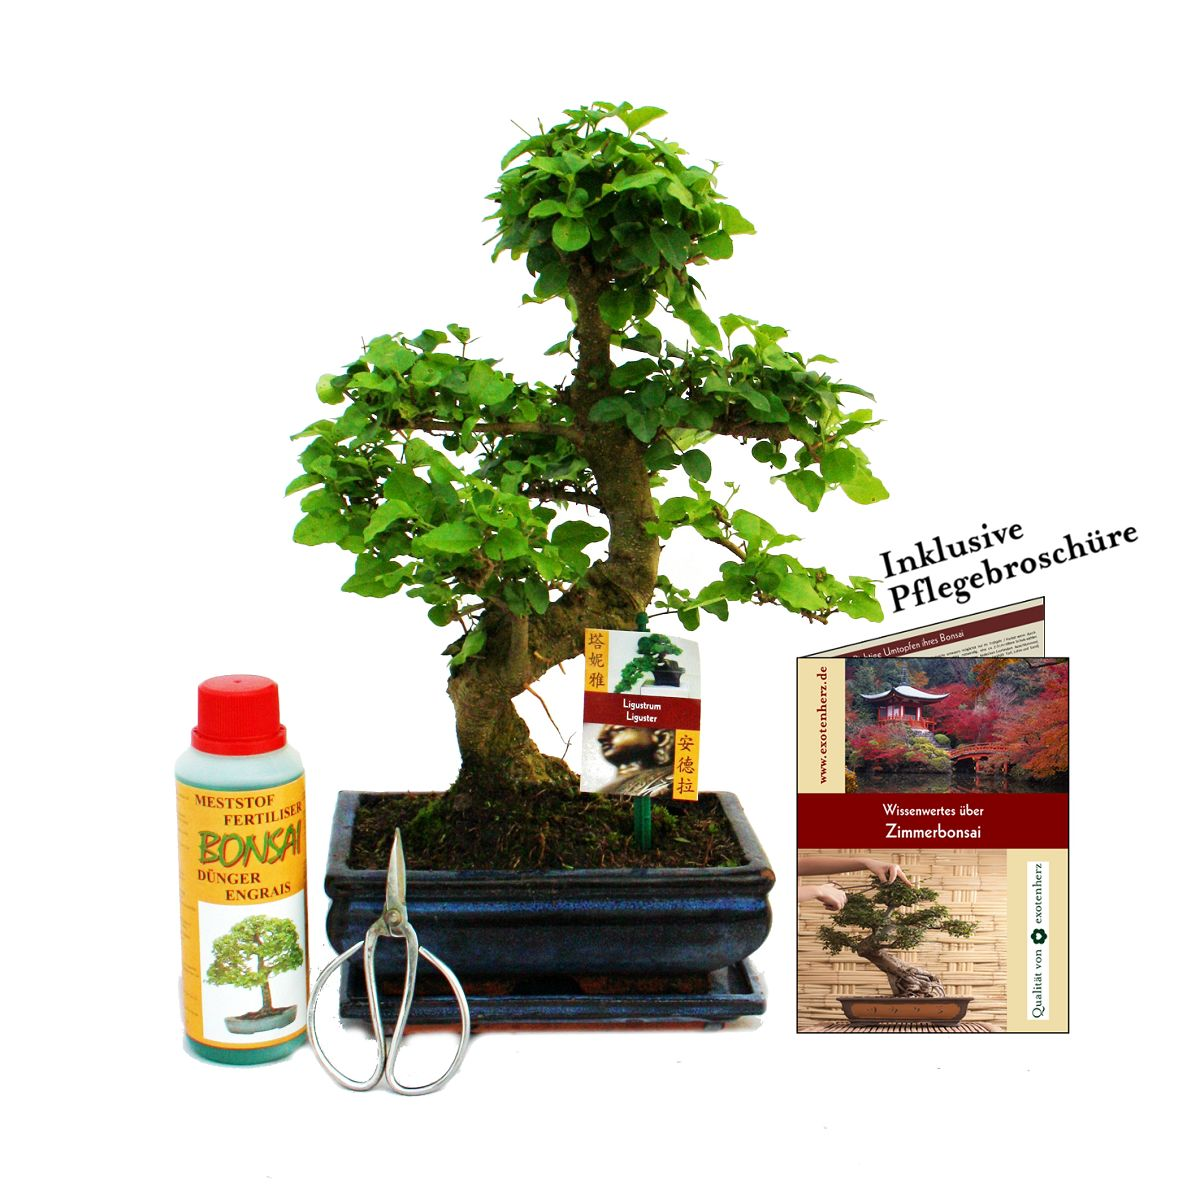 ligustrum geschenkset bonsai chinesischer liguster ca 8 jahre alt. Black Bedroom Furniture Sets. Home Design Ideas